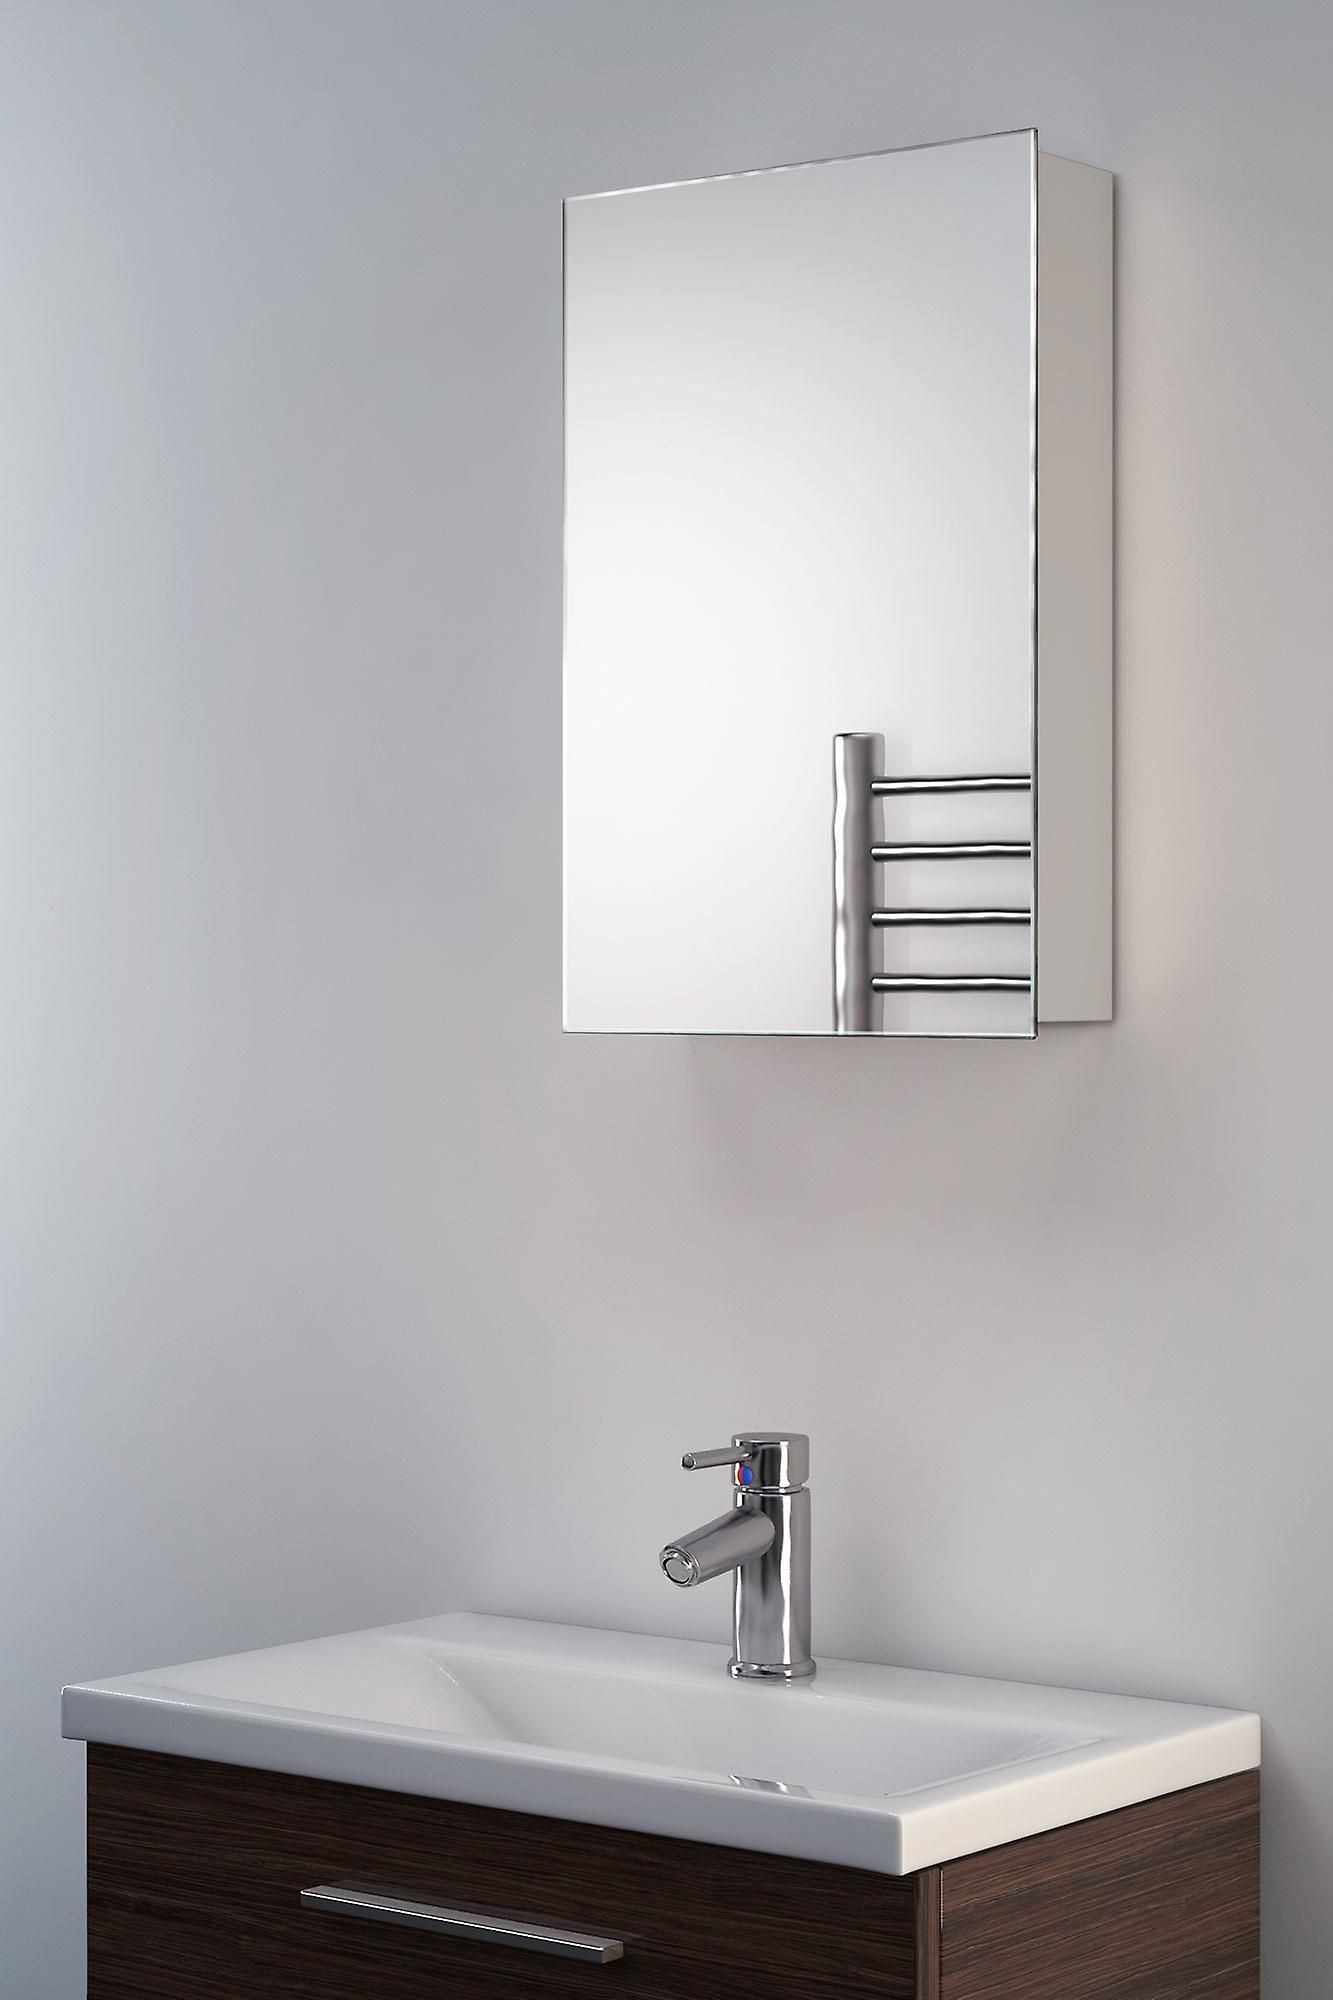 bathroom with deco contemporary prod product rectangular shelf wall mirror lav mounted